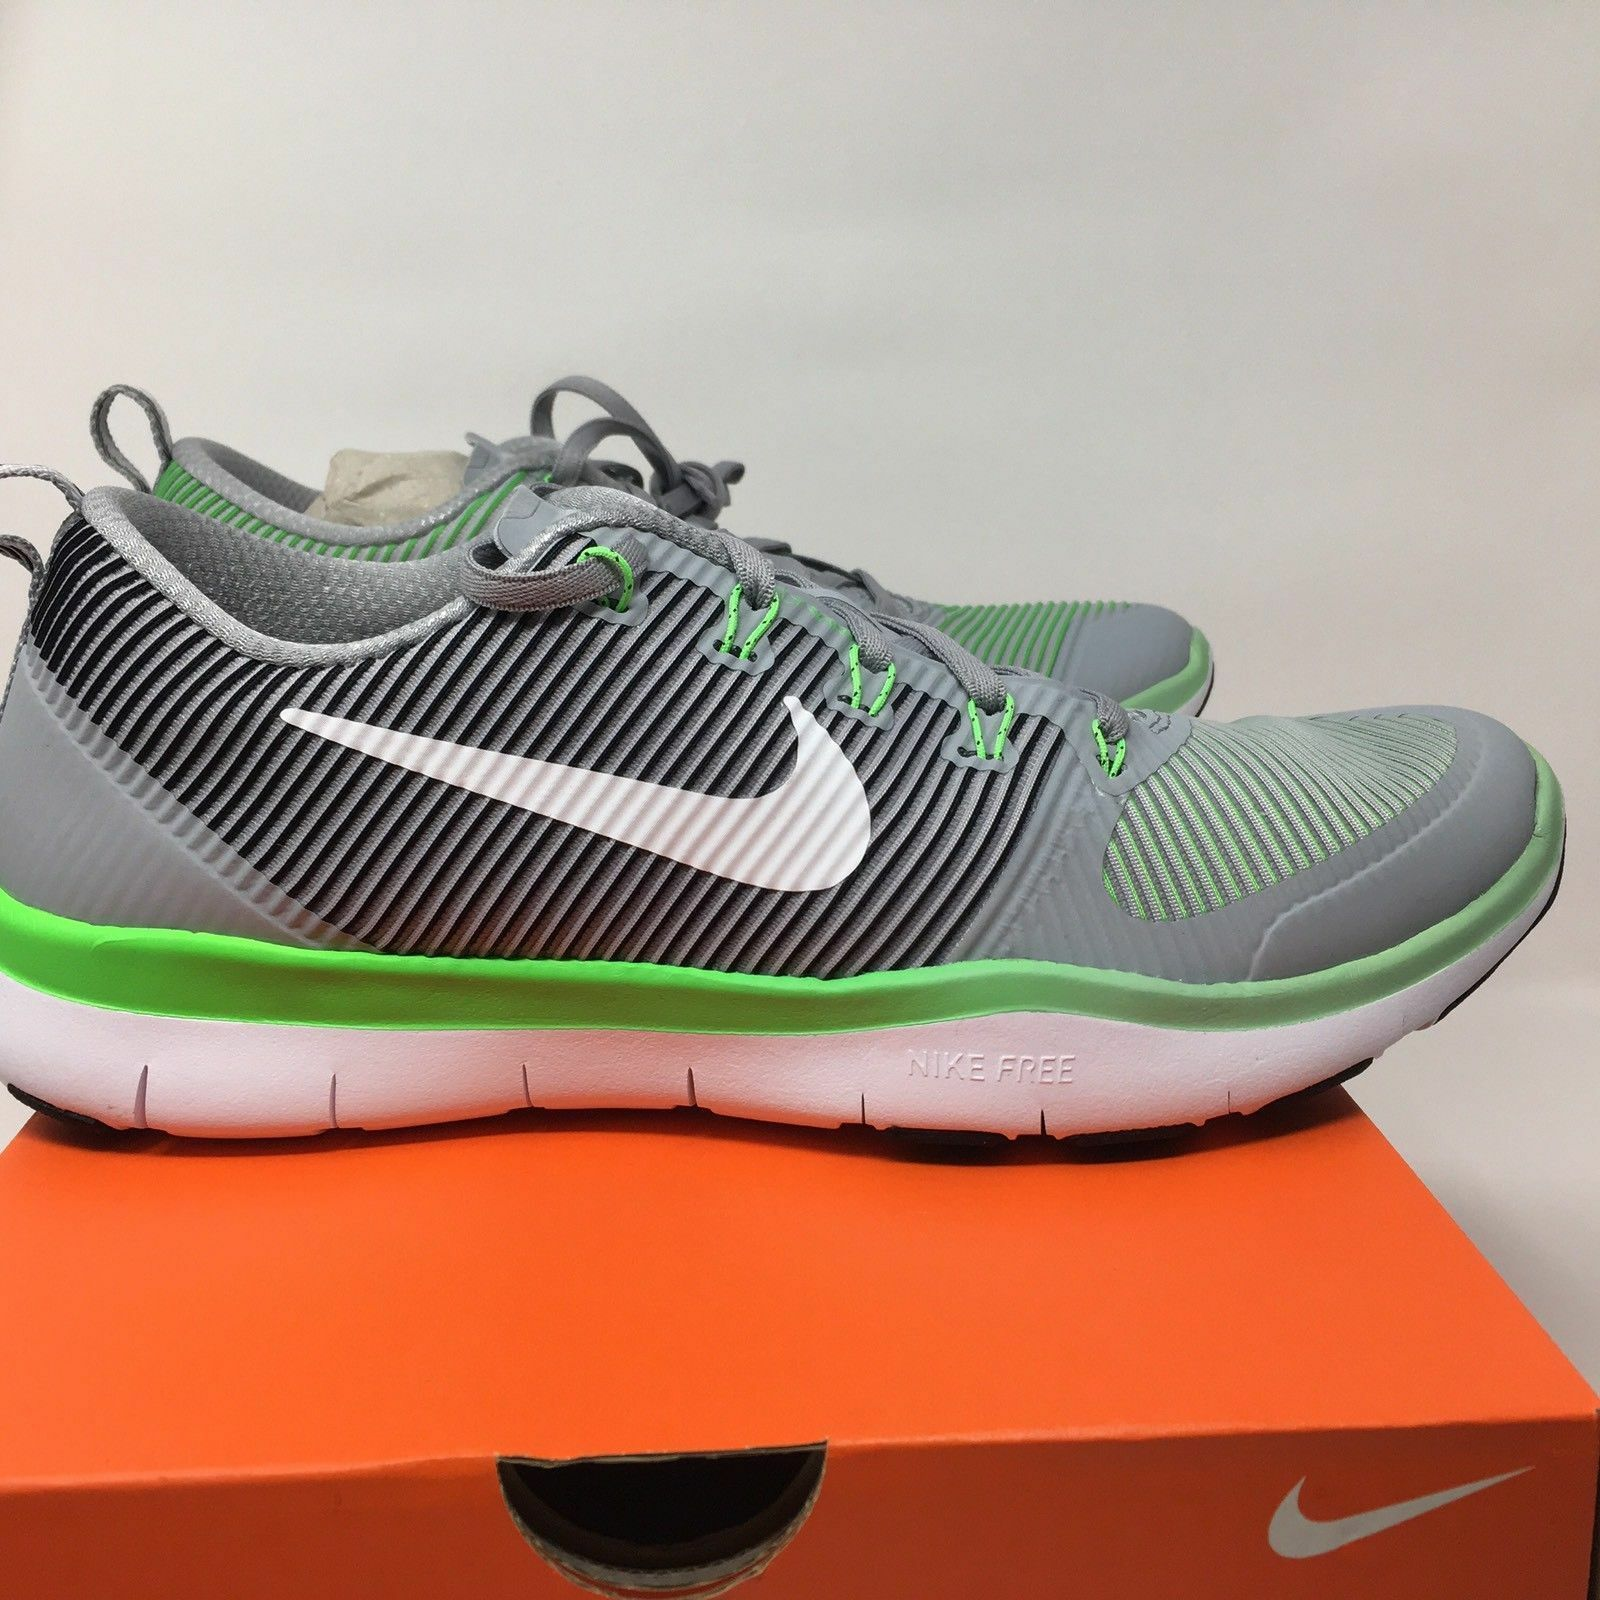 Men's Nike Free Train Versatility Training Shoes Wolf Grey.White.RageGreen Sz7.5 best-selling model of the brand